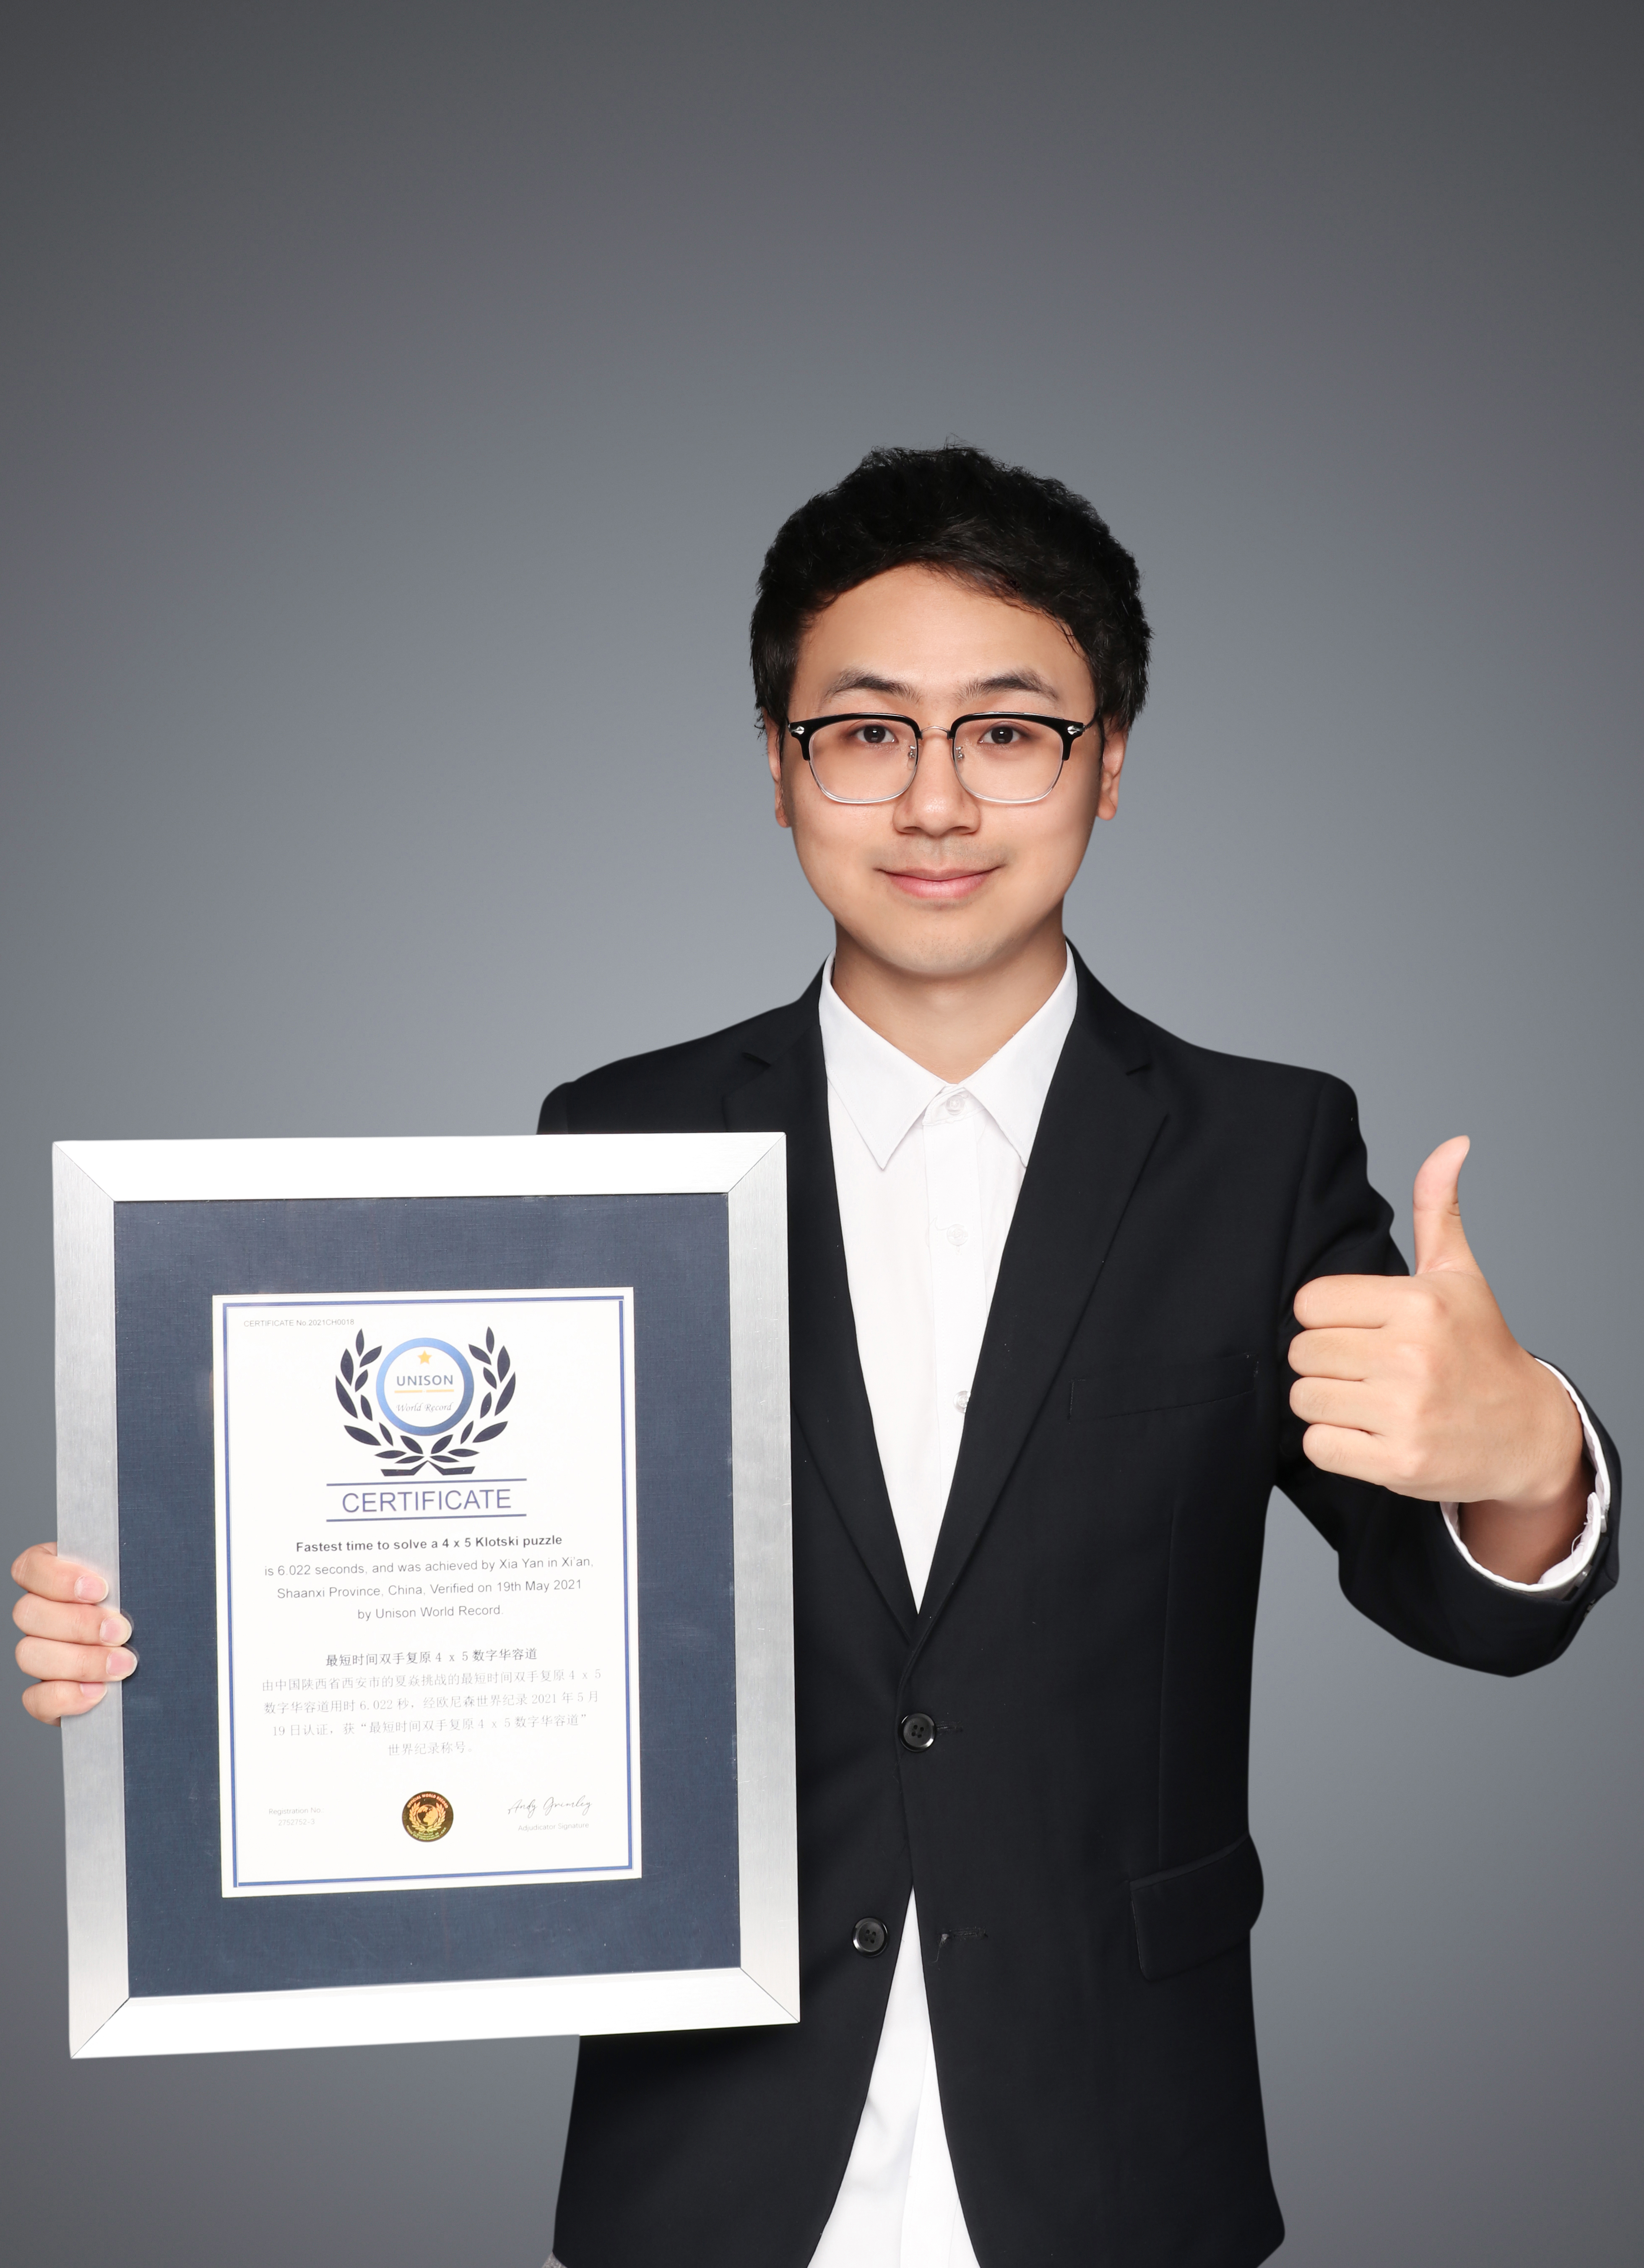 Chinese hand sports master refreshed world record for solving a 4 x 5 Klotski puzzle